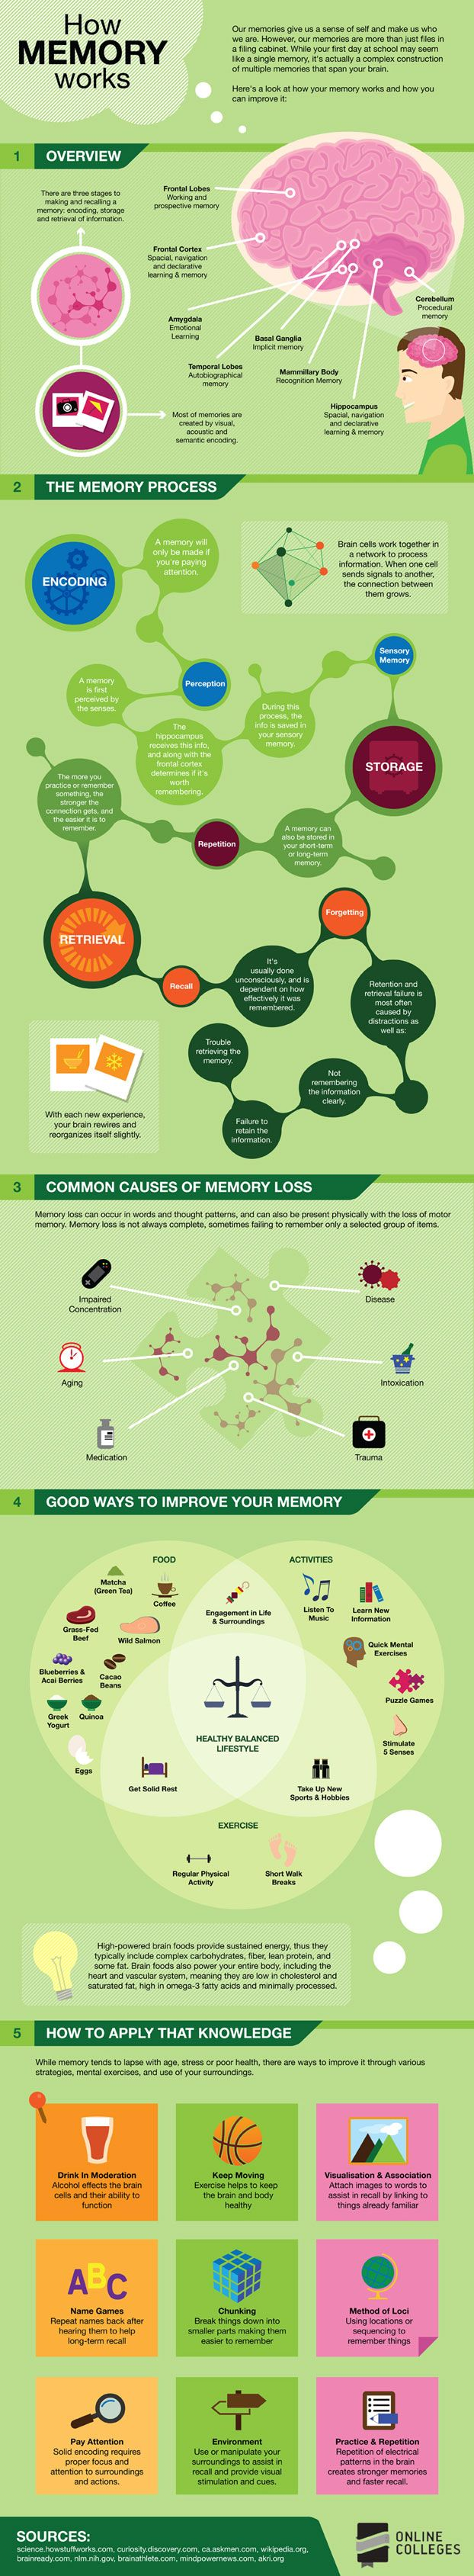 Forgotten Knowledge: How Memory Works, and to Improve Yours (Infographic) : Discovery News